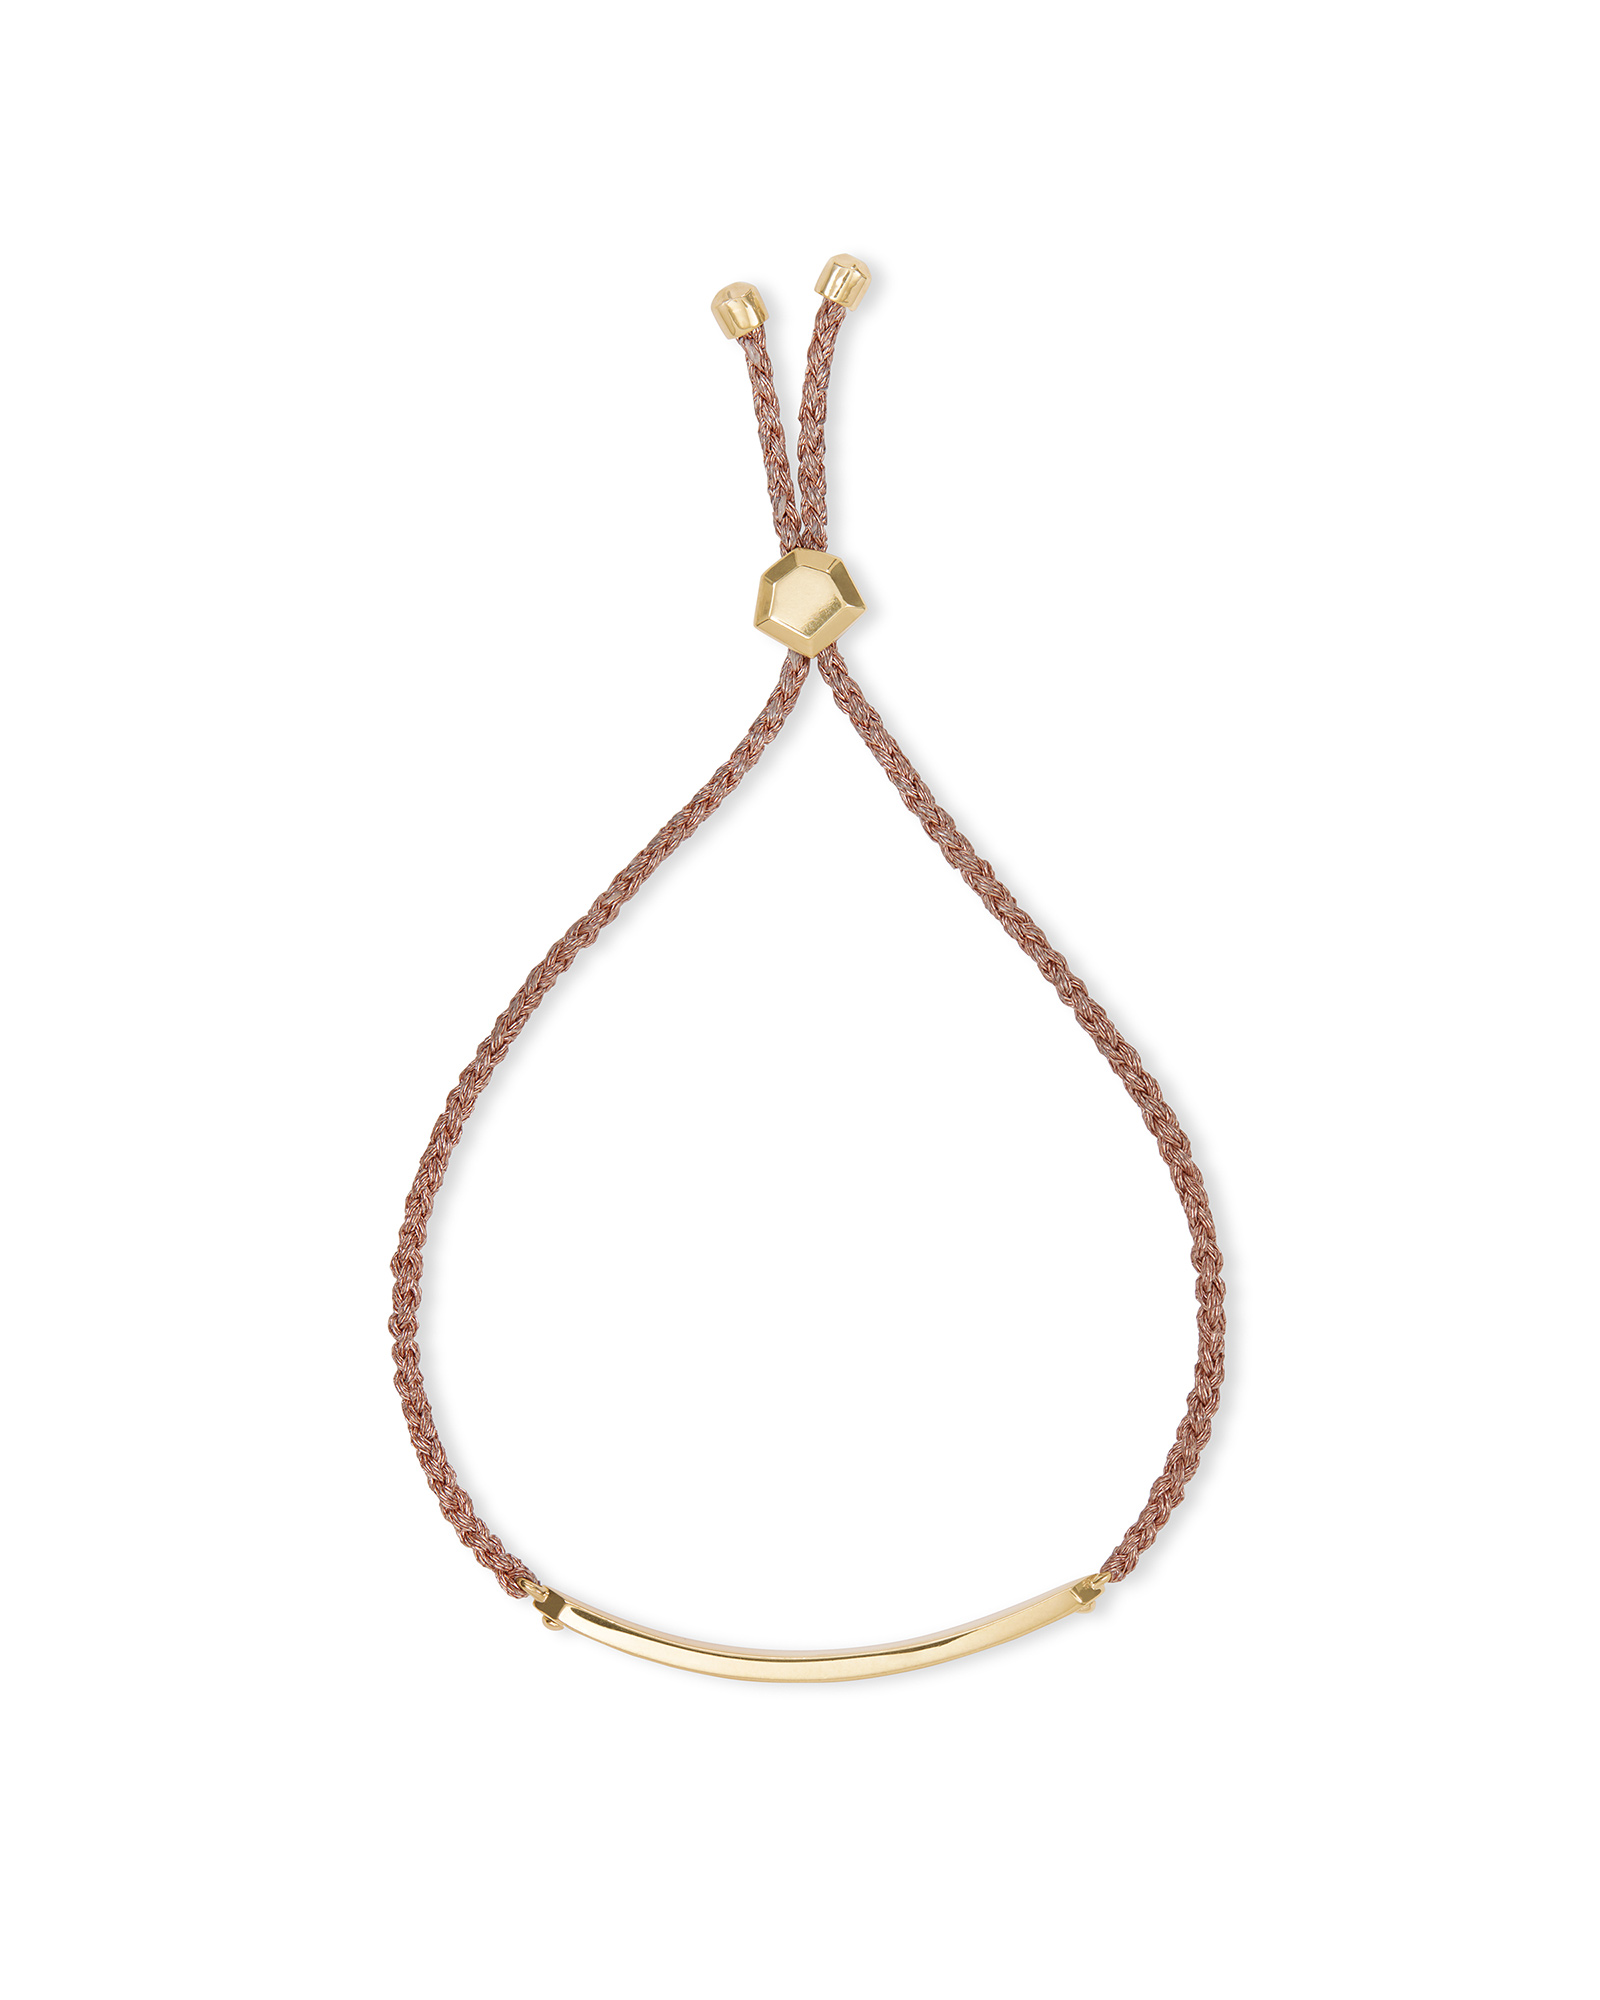 Mattie Bar Cord Bracelet in 18k Gold Vermeil